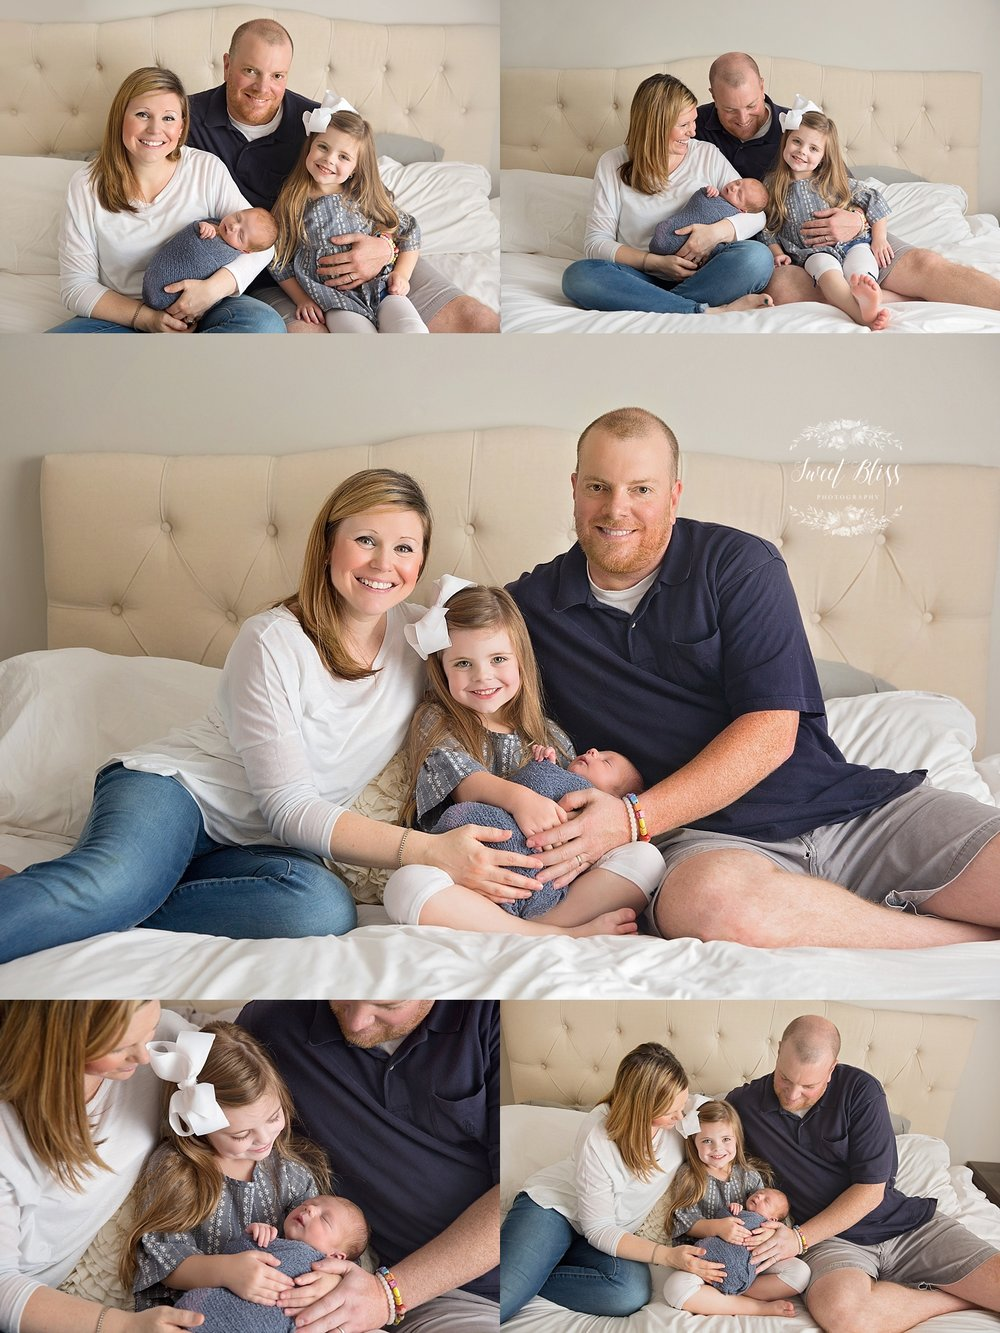 Baltimorenewbornphotographer_harfordcountynewbornphotography_Sweetblissphotography_familybed4.jpg